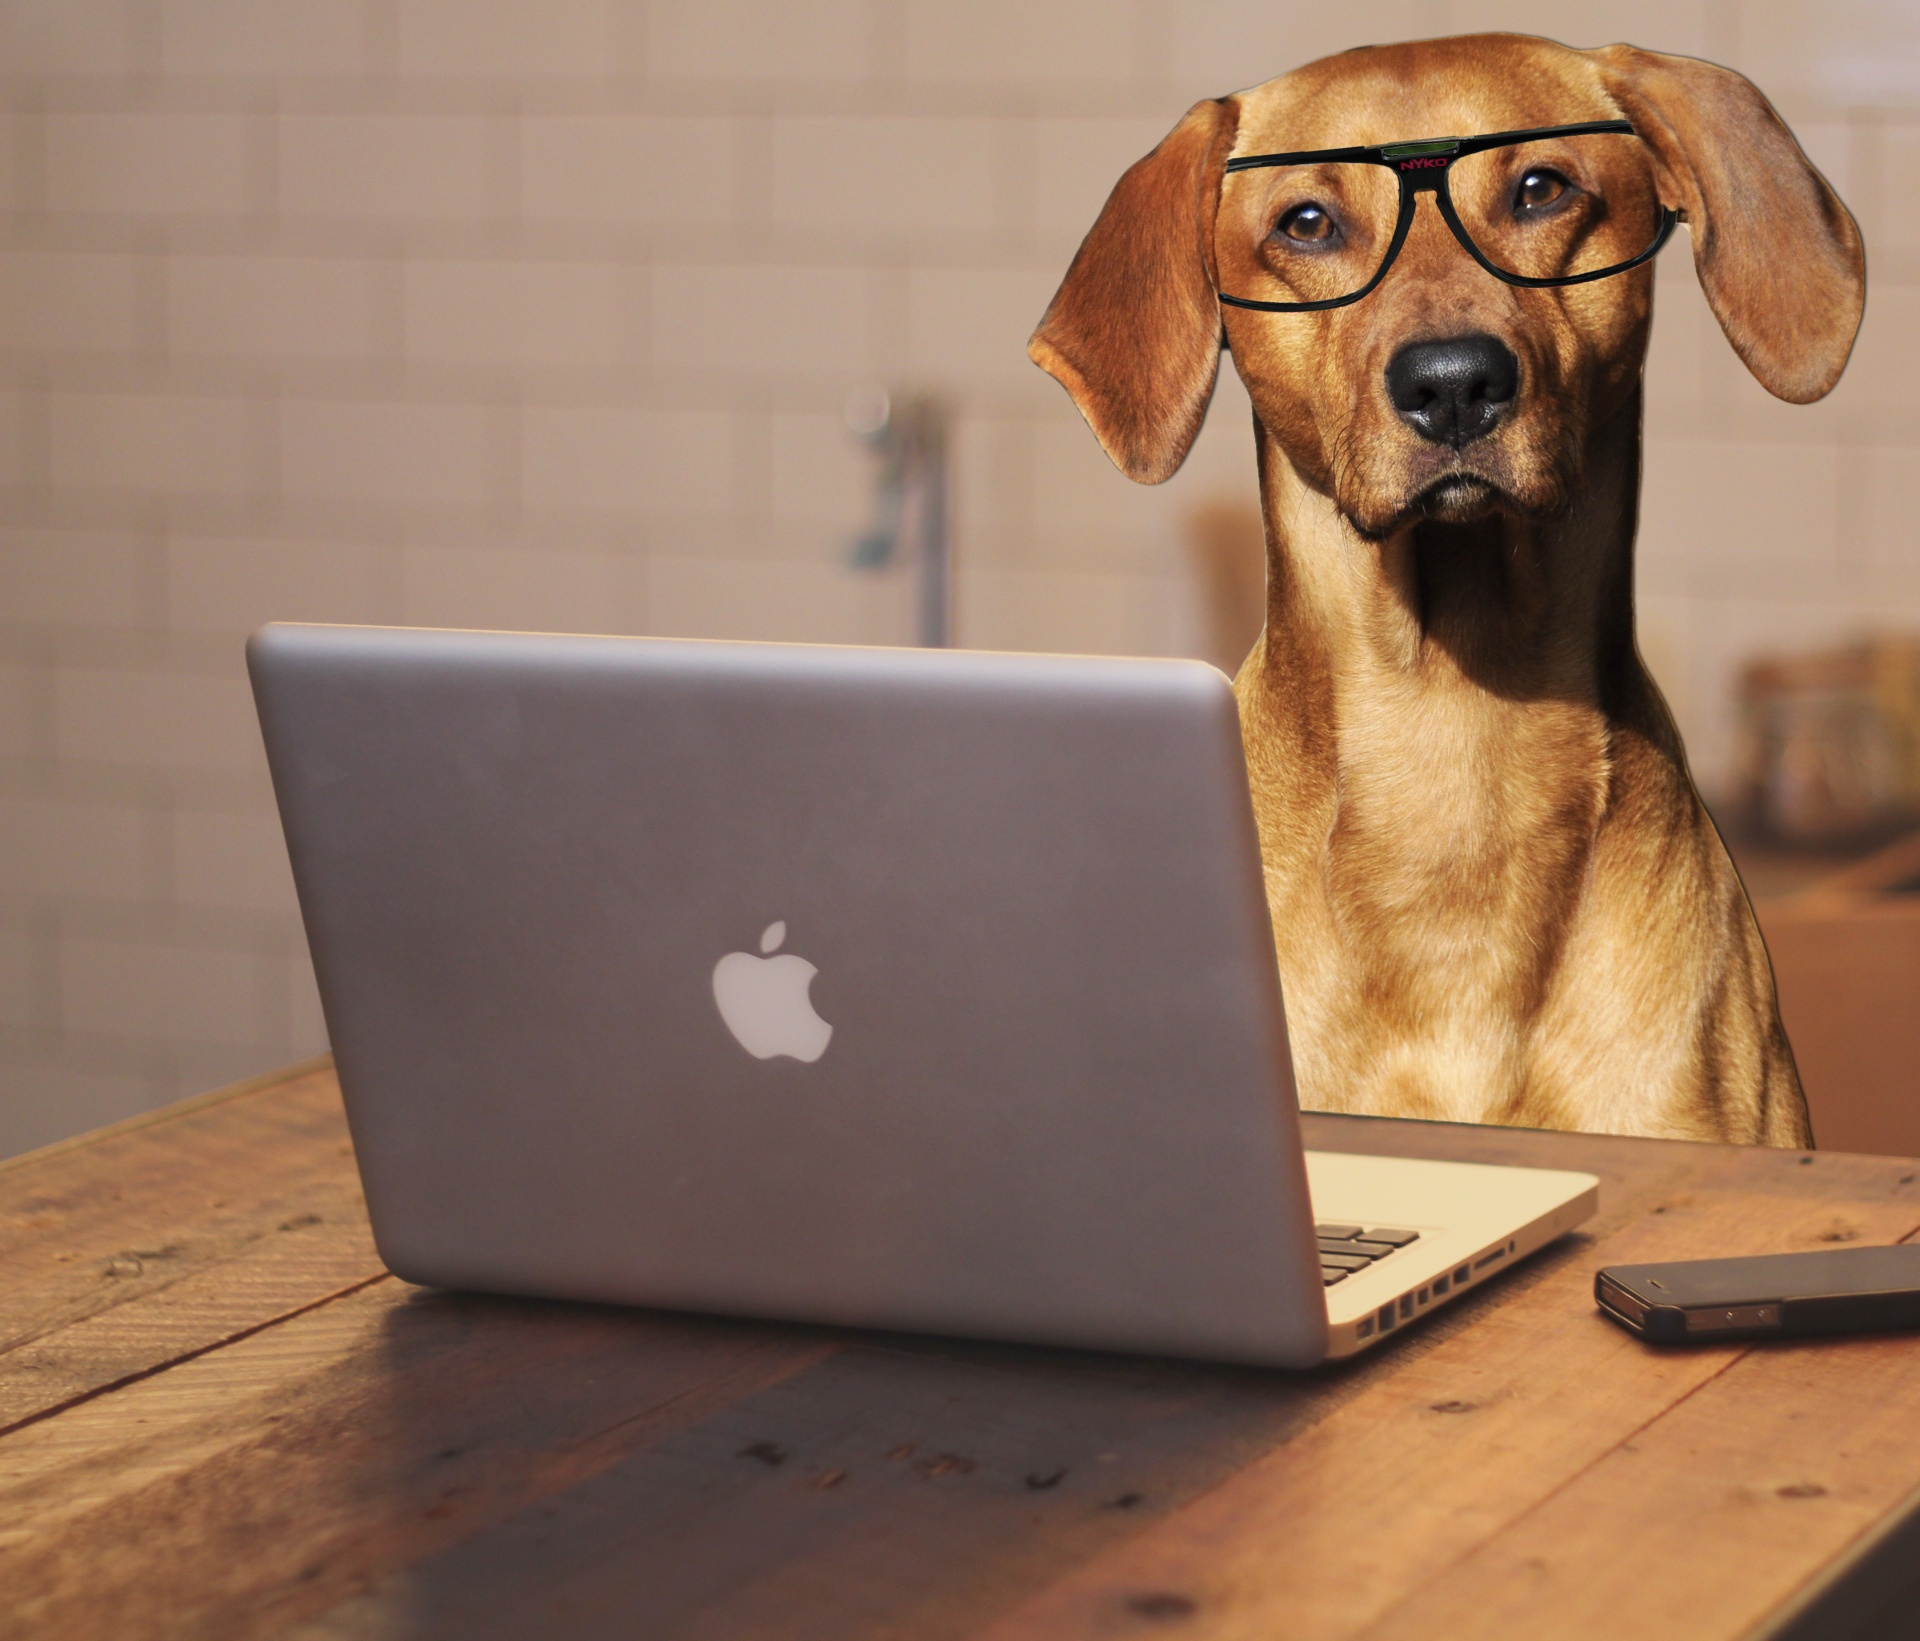 https://www.publicdomainpictures.net/en/view-image.php?image=174322&picture=dog-using-laptop-computer